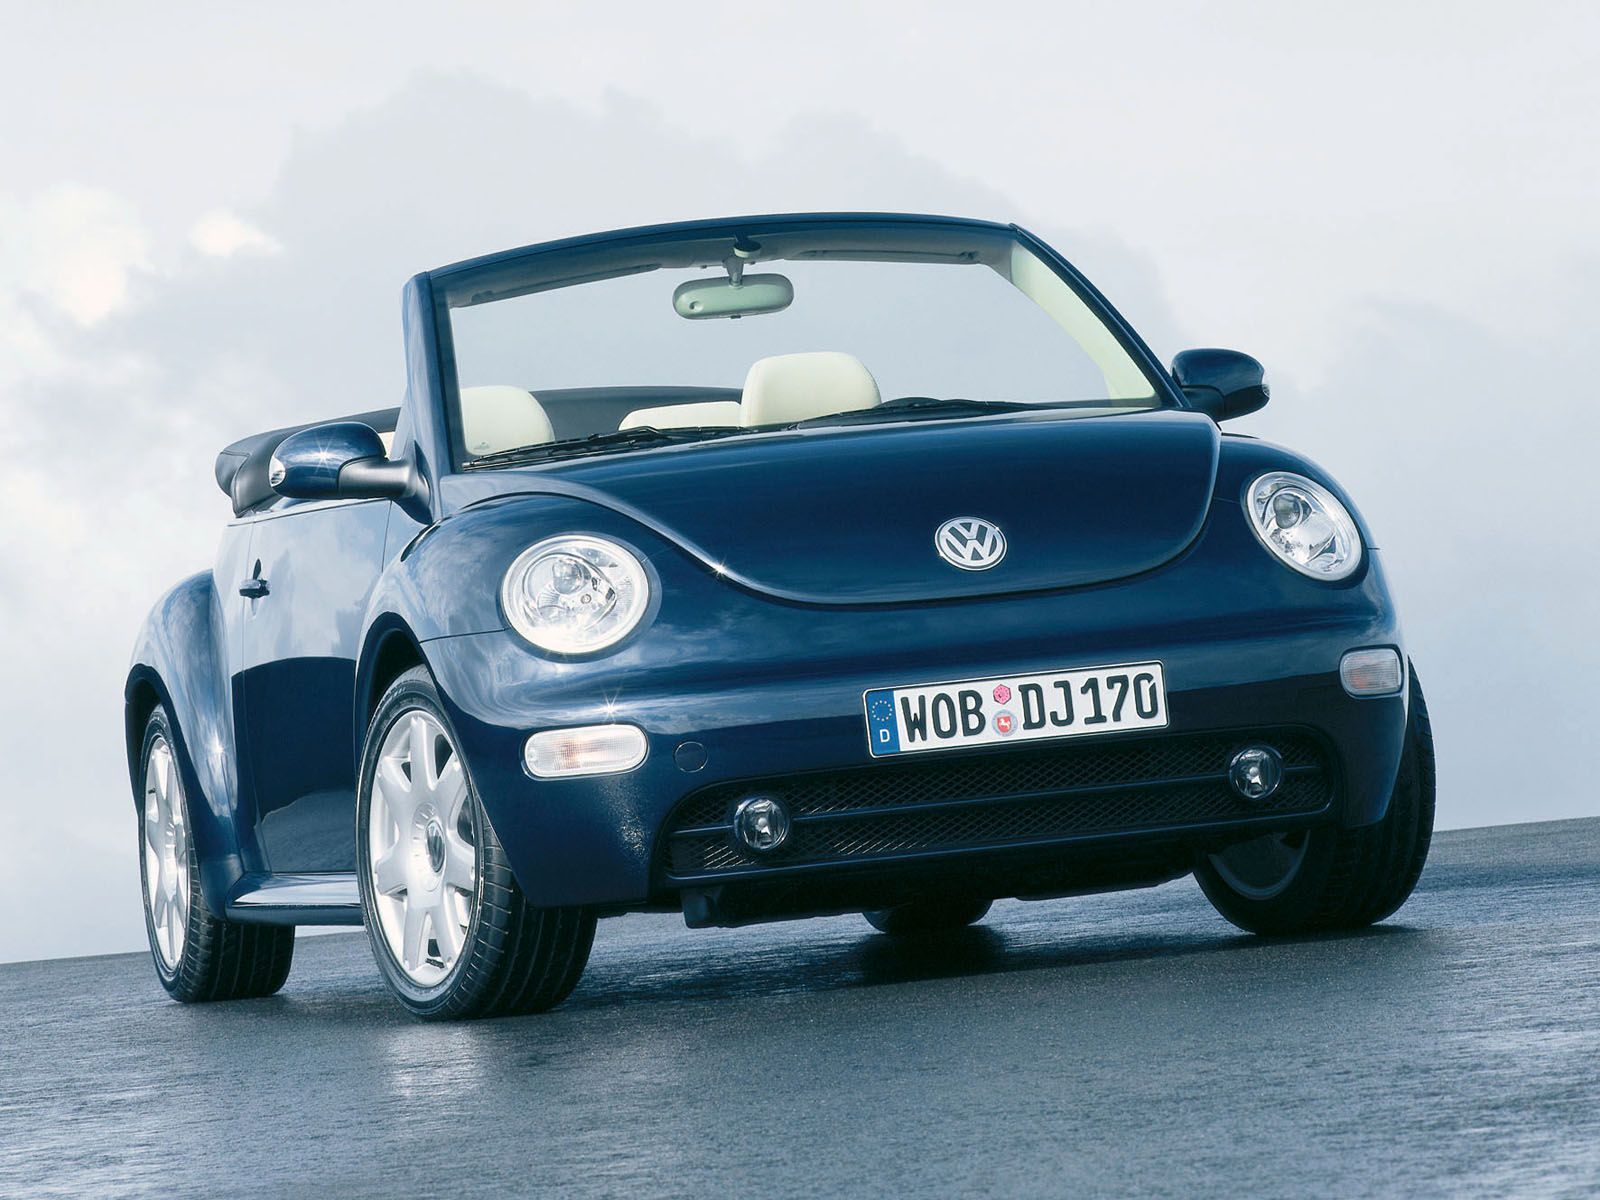 2006 Volkswagen Beetle Top Speed And Karmann Ghia Engine Electrical System Troubleshooting